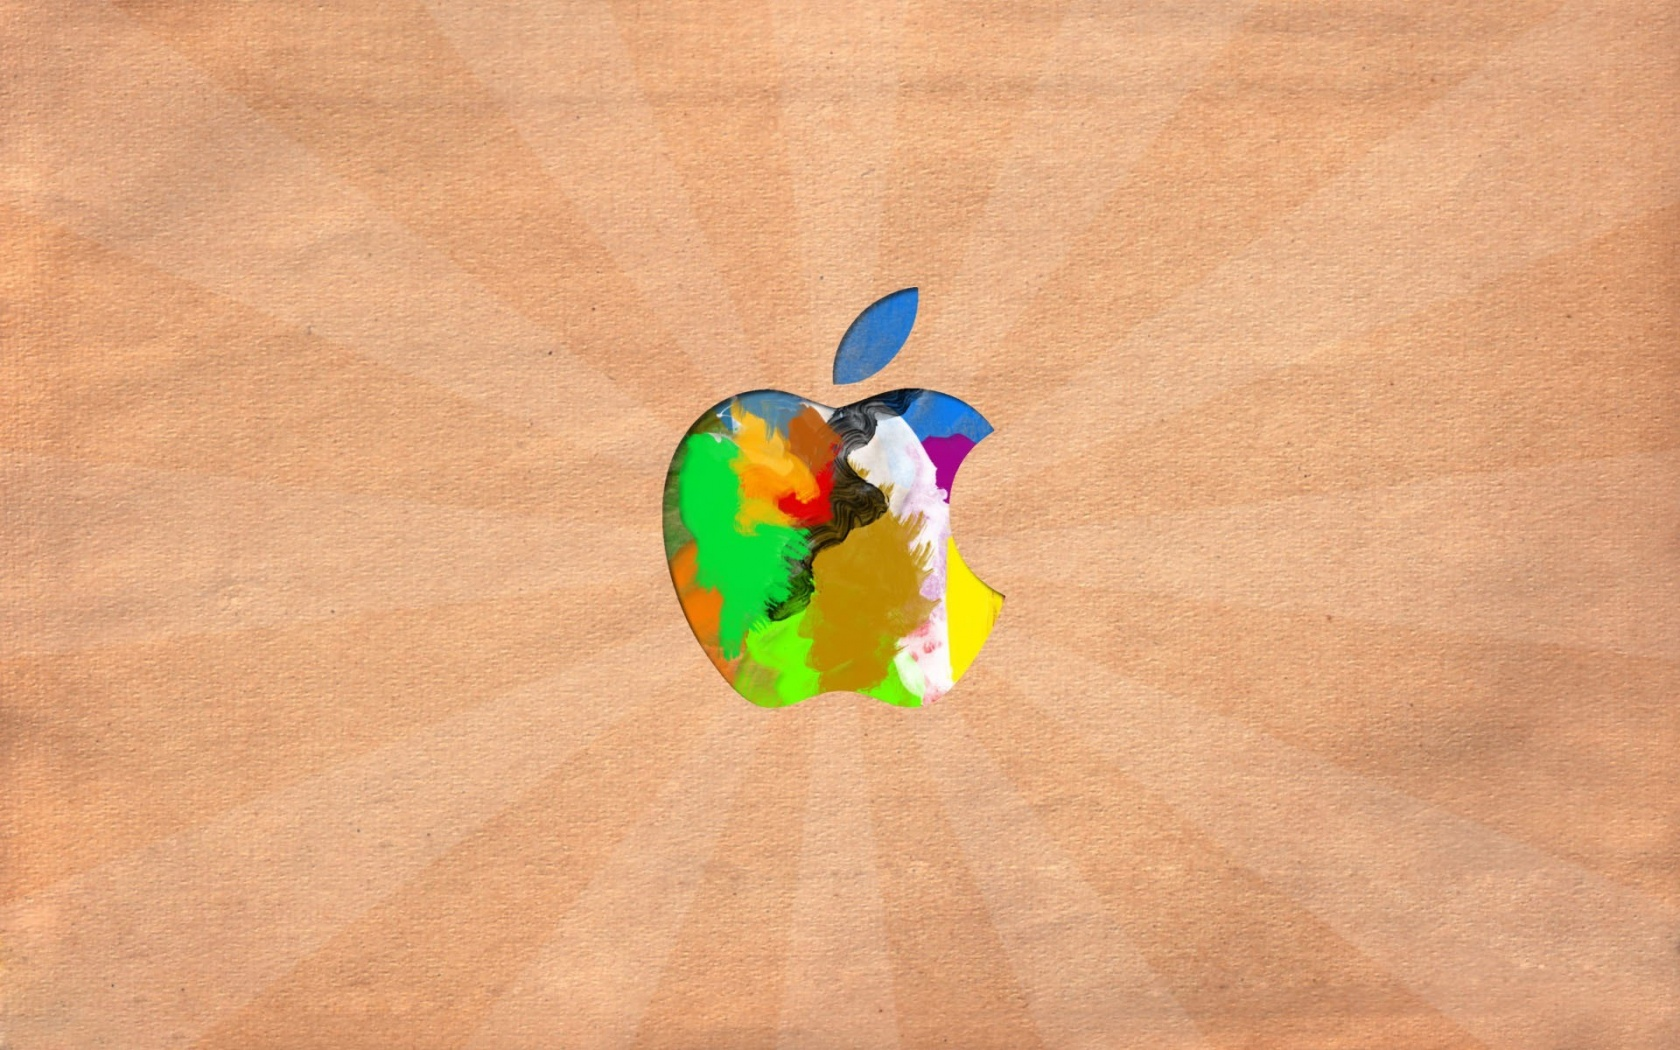 1680x1050 Apple logo, mac, macintosh